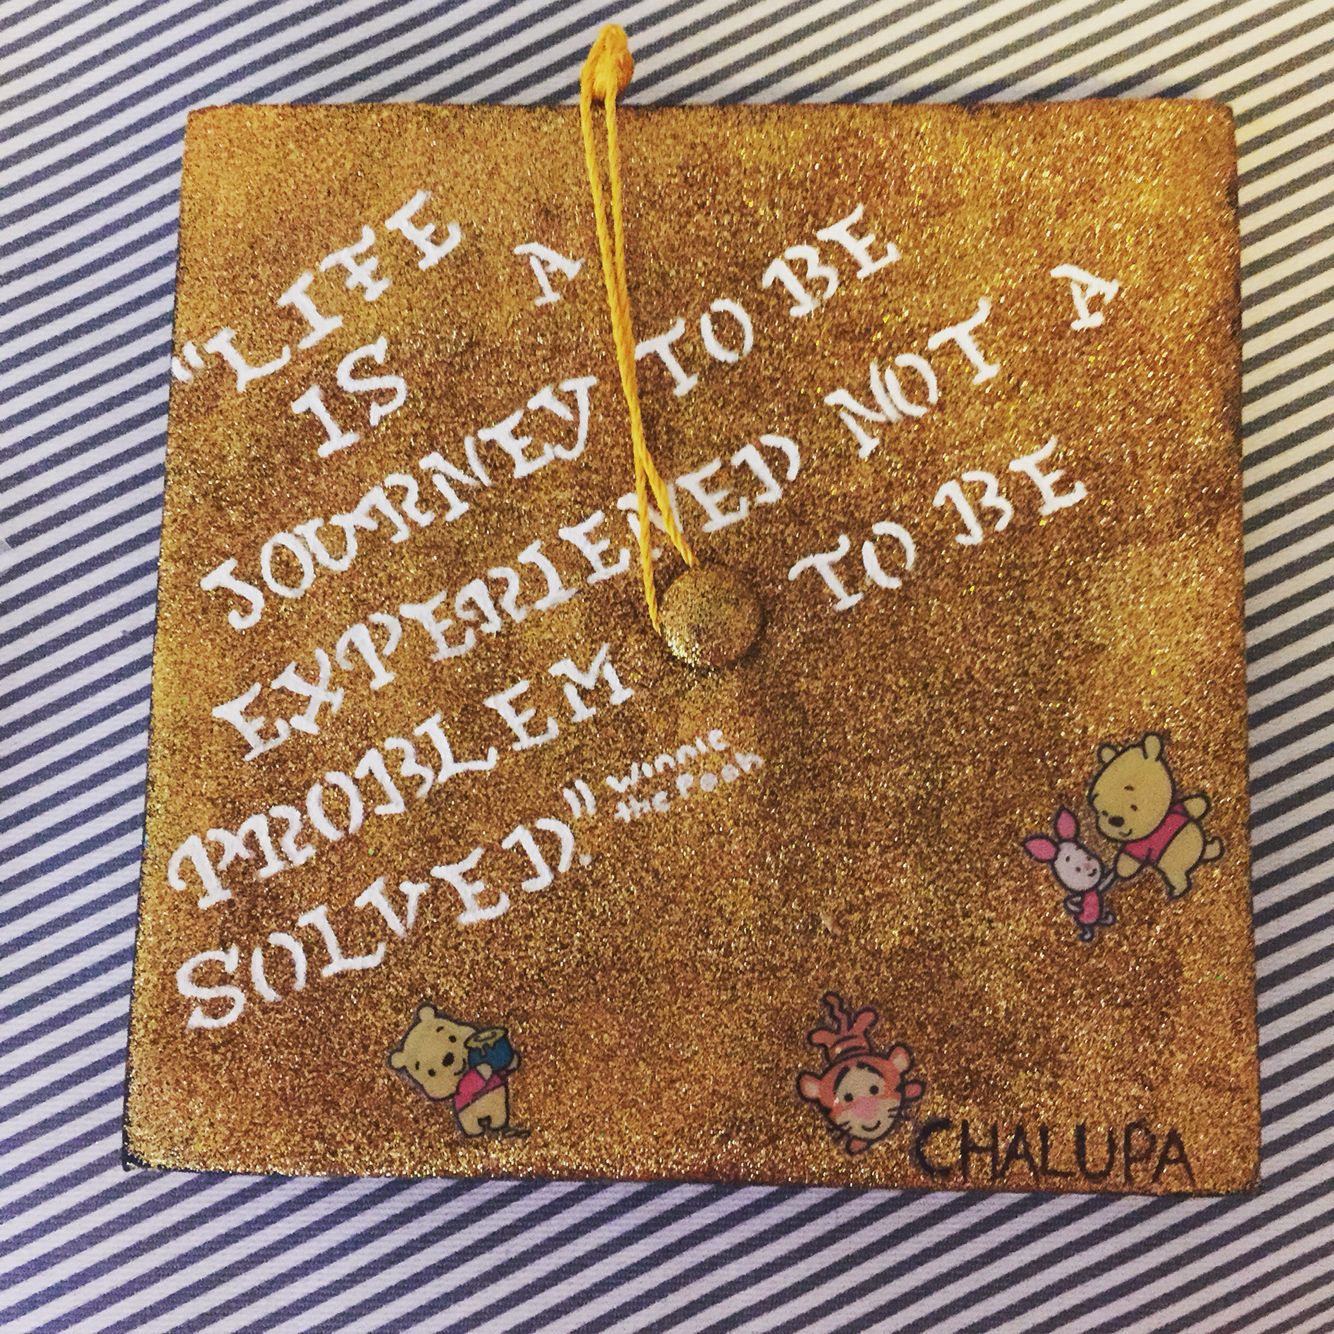 My graduation cap winnie the pooh quote i absolutely love and it cap decorations my graduation cap winnie the pooh quote i absolutely love and it was so much amipublicfo Images